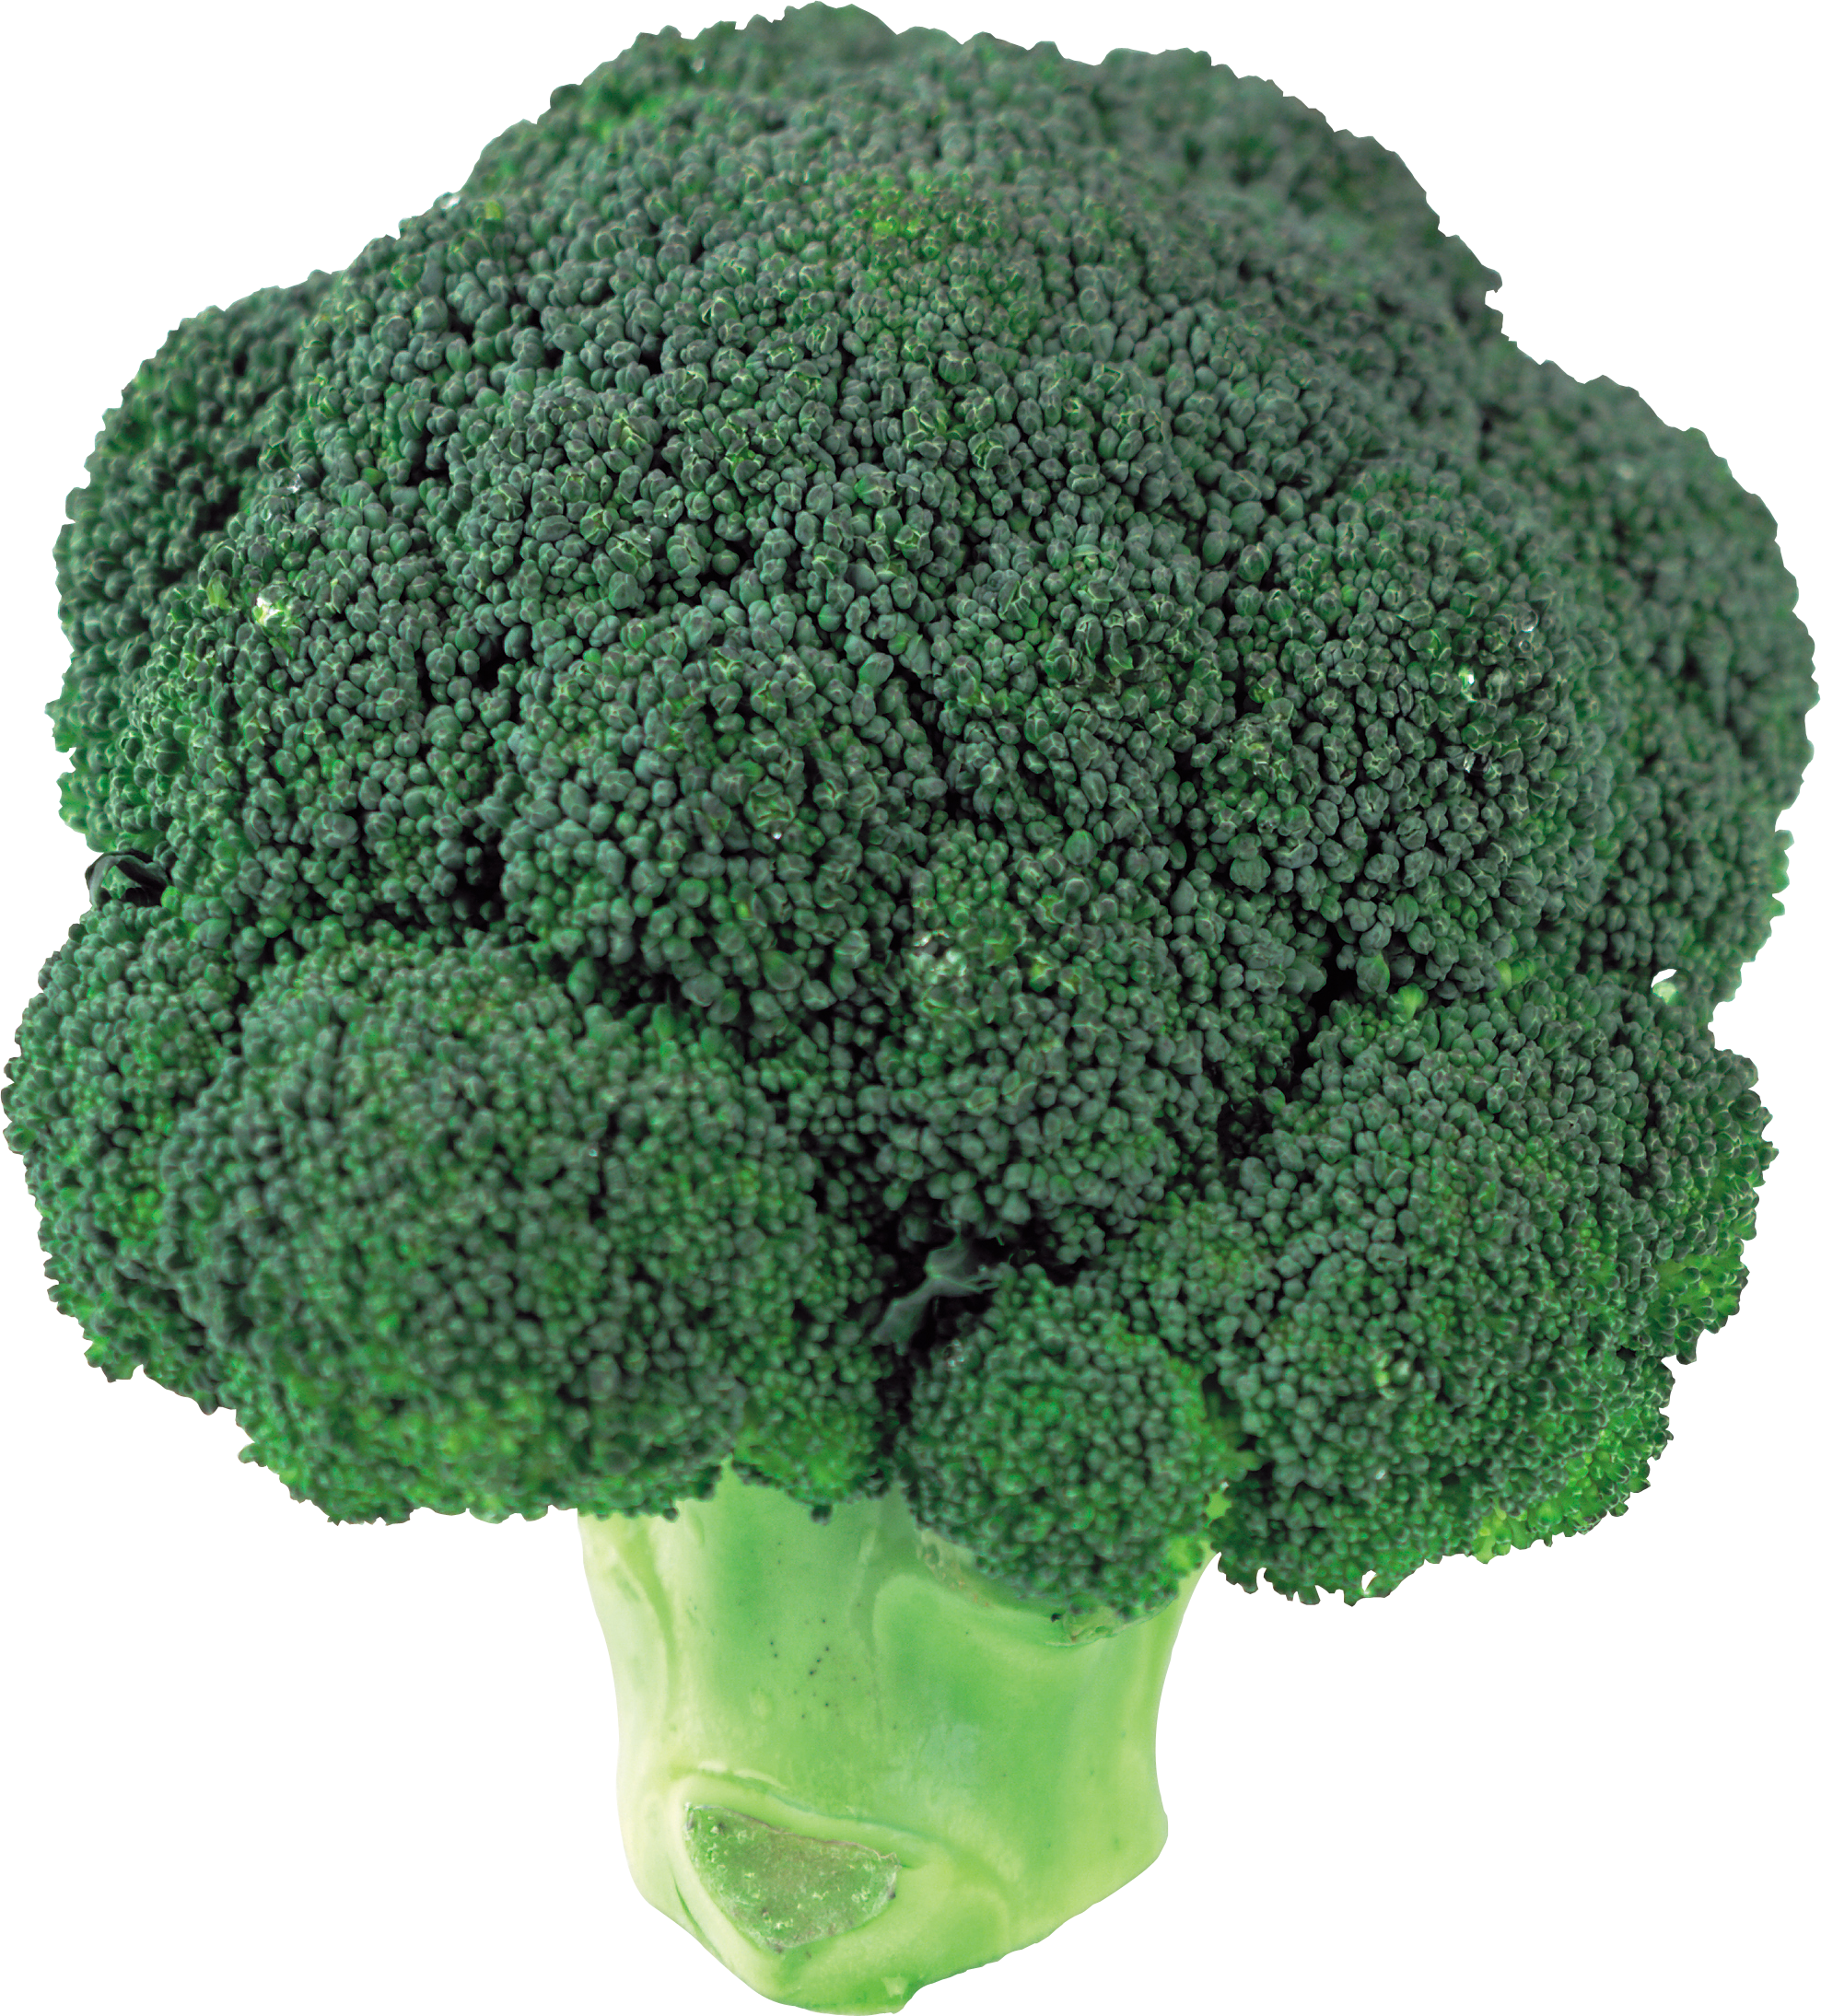 Broccoli PNG image - Broccoli HD PNG